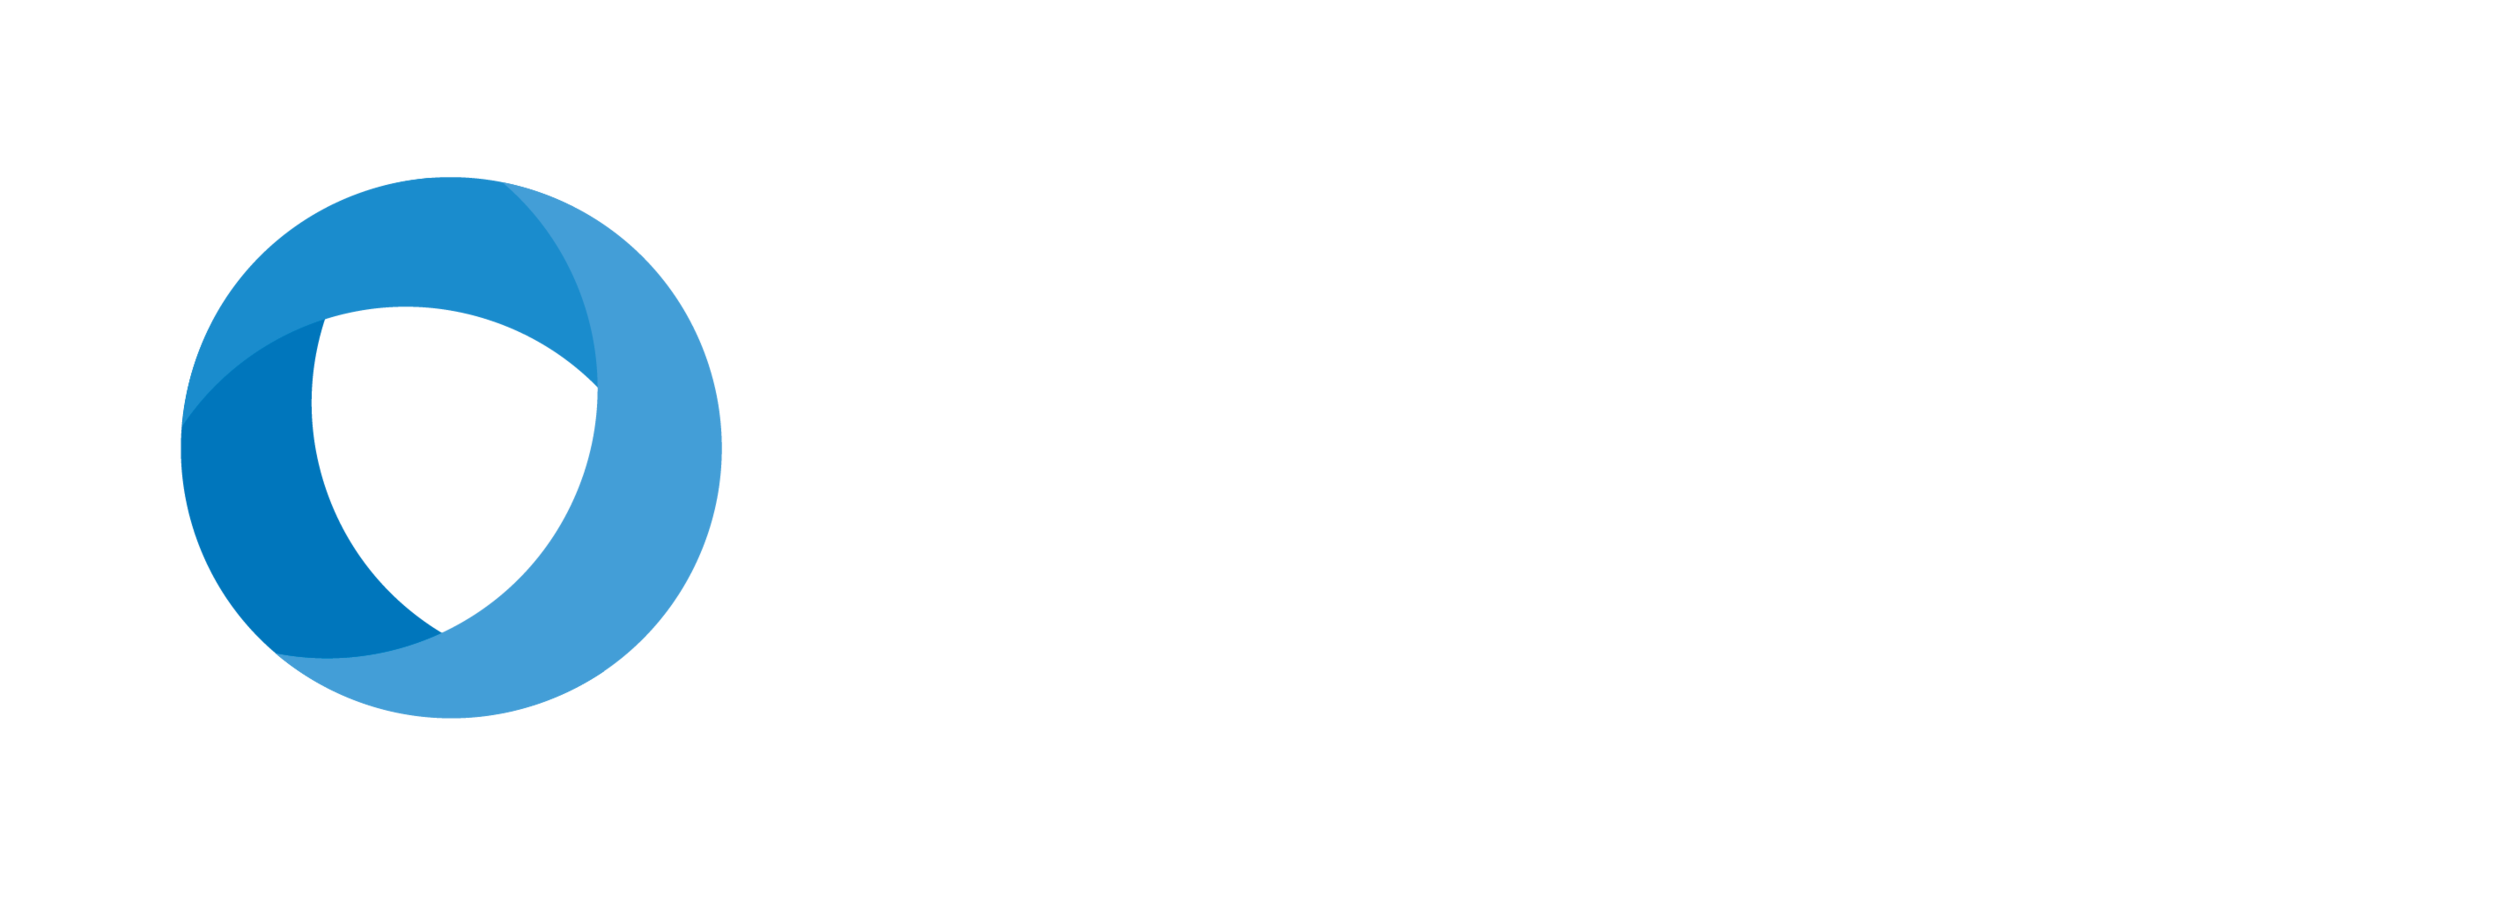 CMS_logo_july2017_white-01 - Copy.png